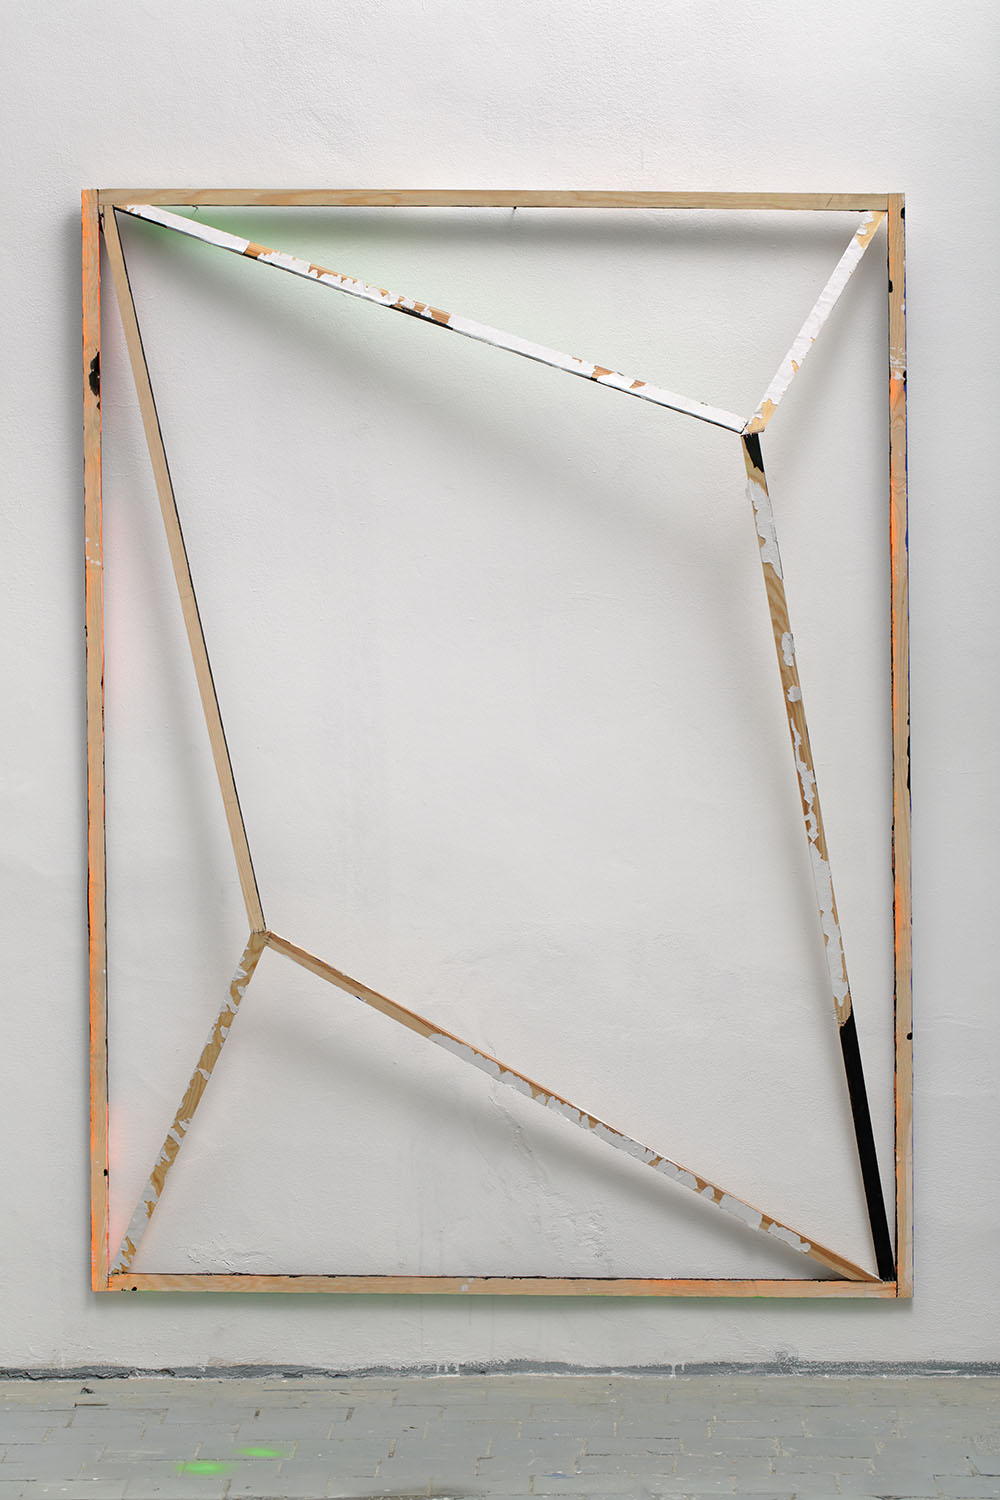 Back field no. 1 from DATA series / 185 x 143 x 25 cm / mixed media, wood / 2015